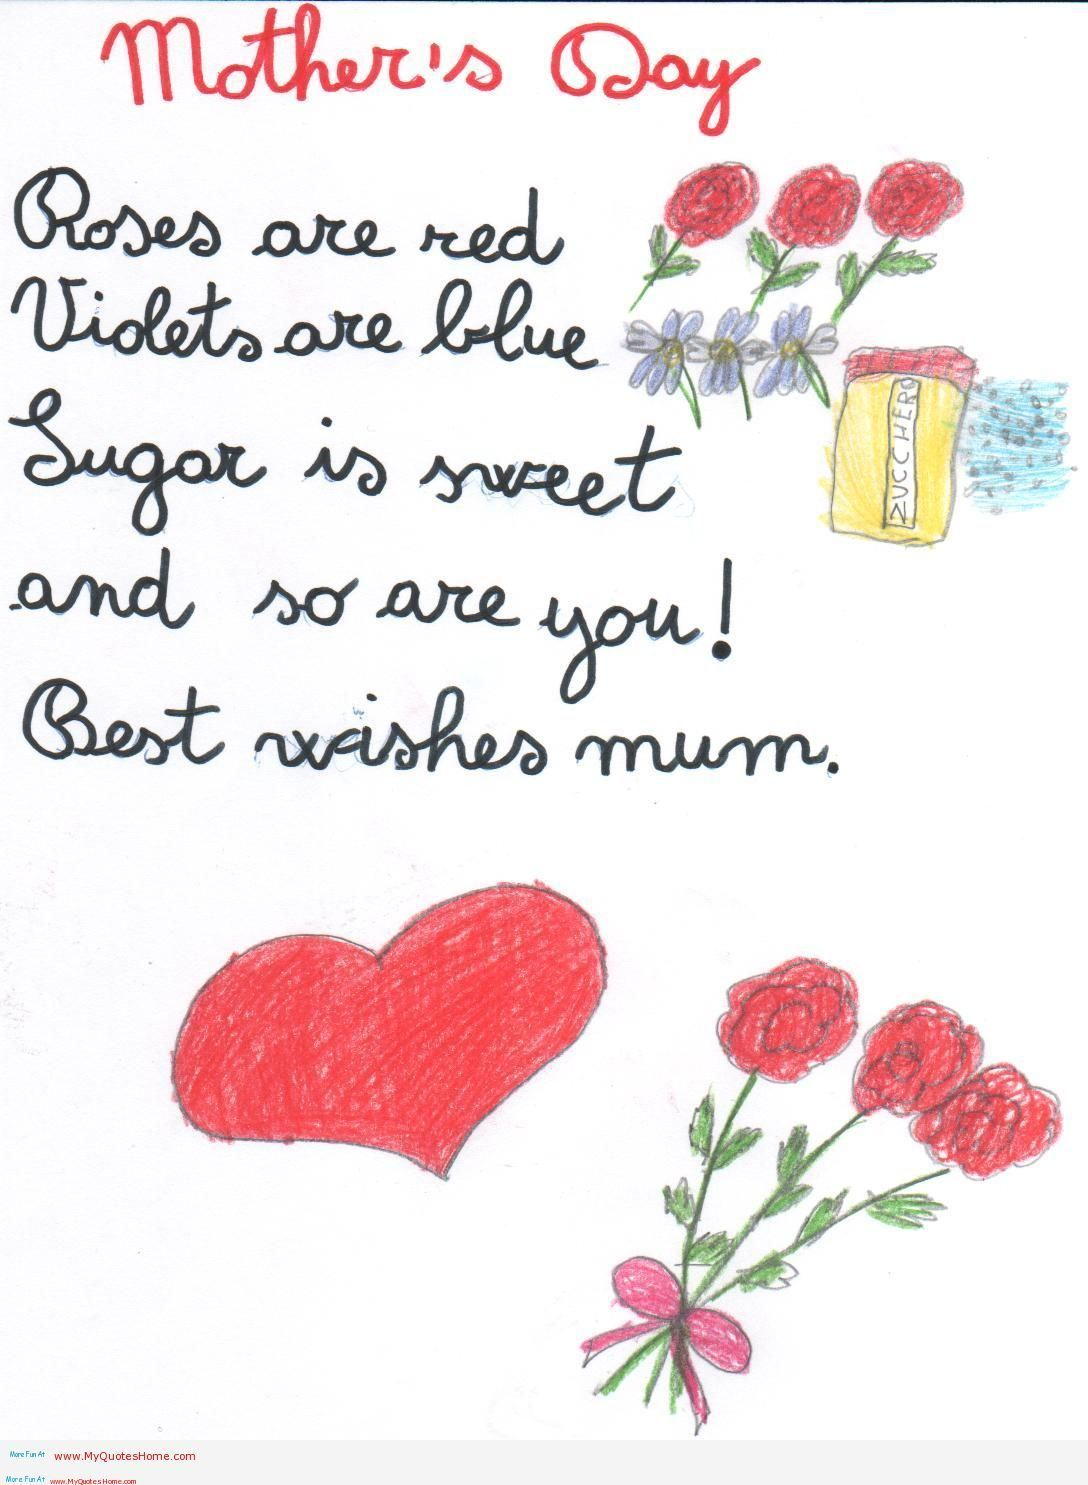 Cute Card For Mum Mummy Mom Mam Mothers Day Birthday Valentines Day Love Nice